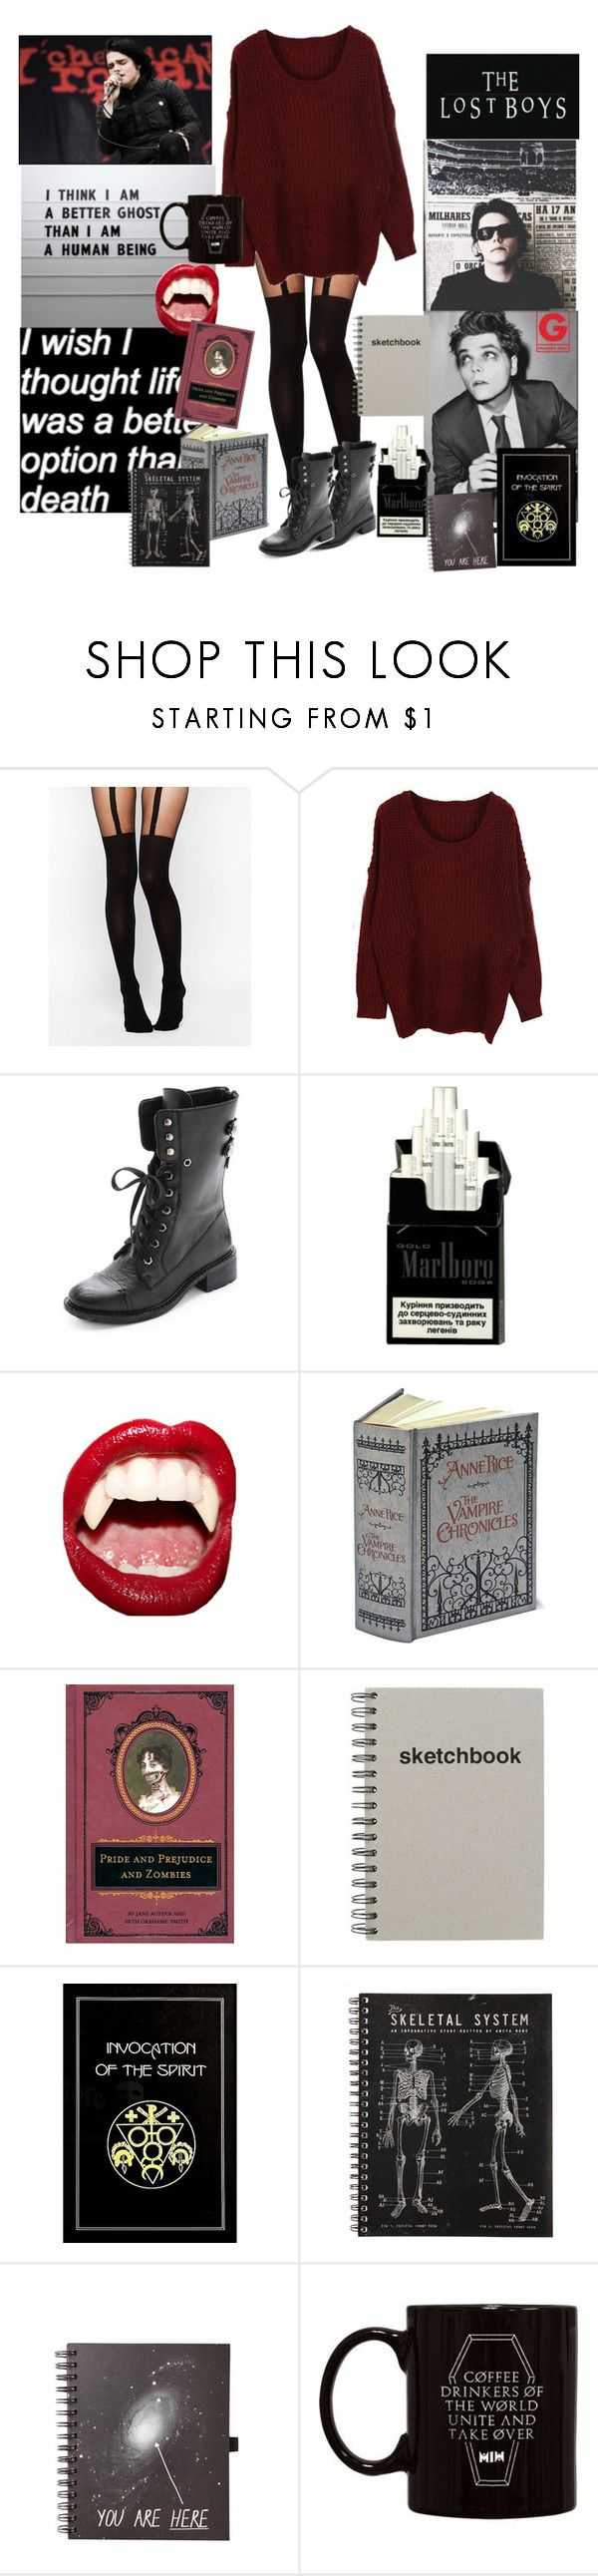 """Snowed In With Gerard Way"" by witchblood ❤ liked on Polyvore featuring ASOS, Sam Edelman, ...Lost, Manic Panic, The Damned, women's clothing, women's fashion, women, female and woman"